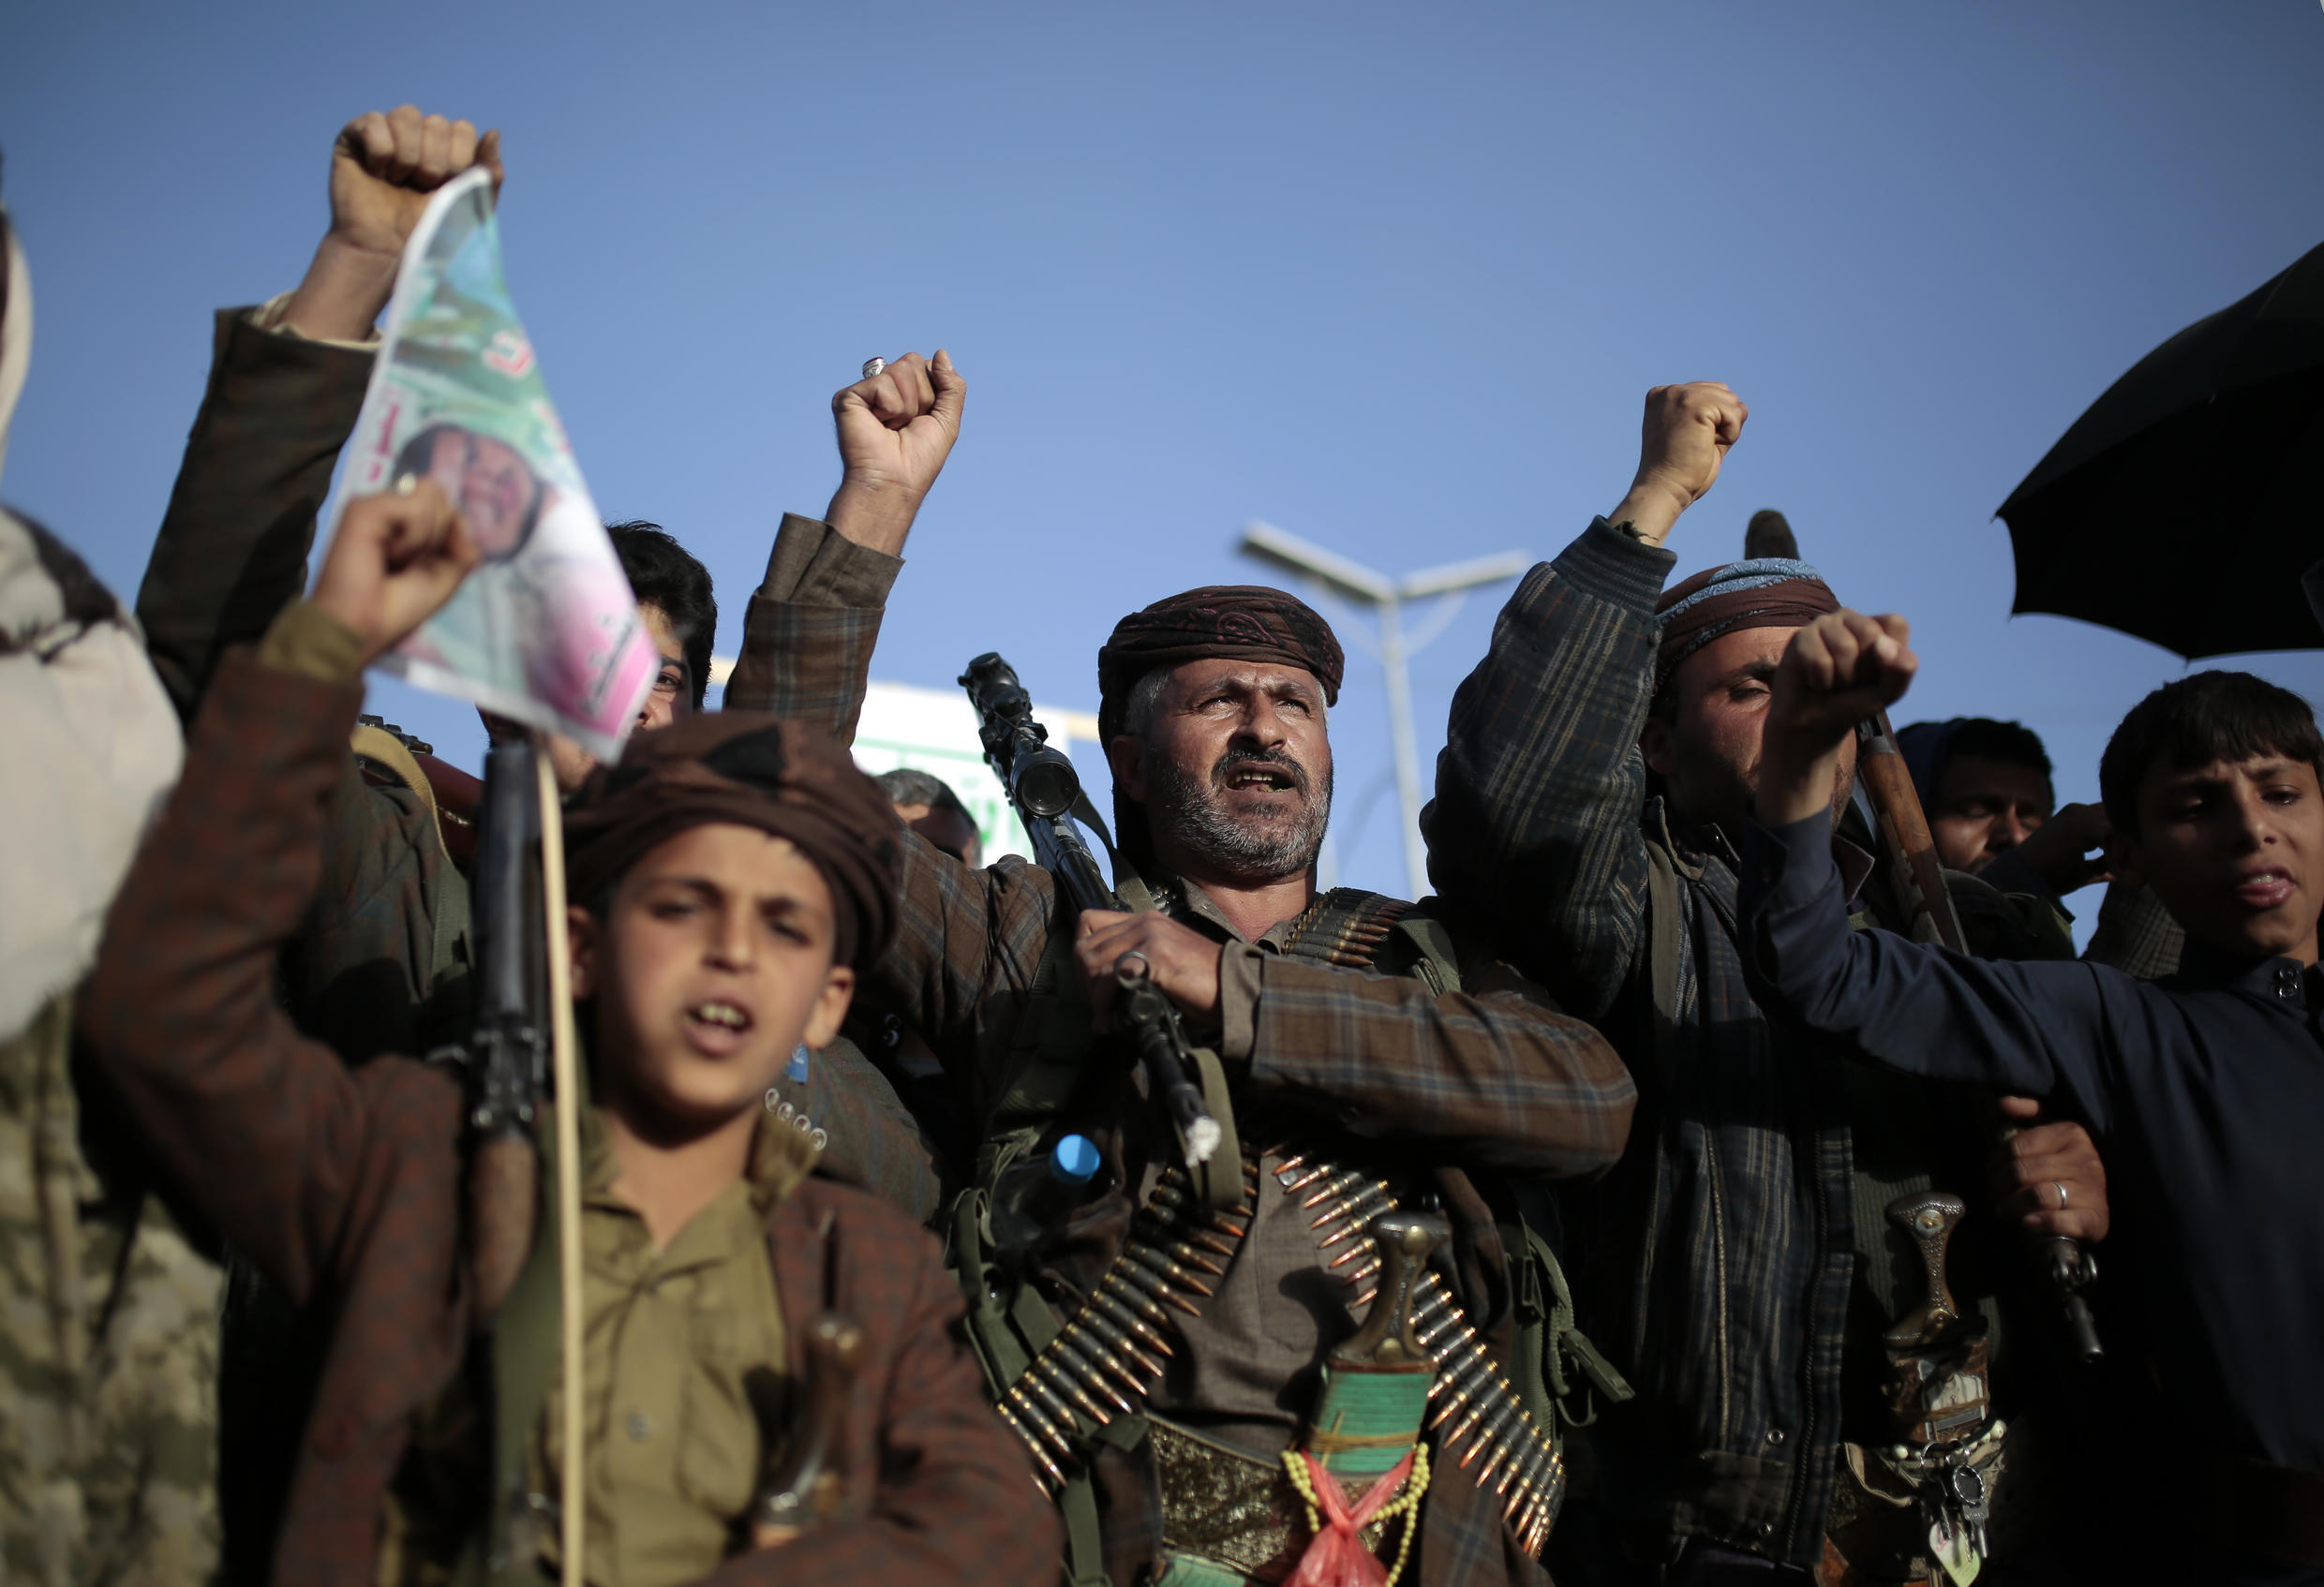 Houthi supporters chant slogans as they attend a demonstration against the United States over its decision to designate the Houthis a foreign terrorist organization in Sanaa, Yemen.